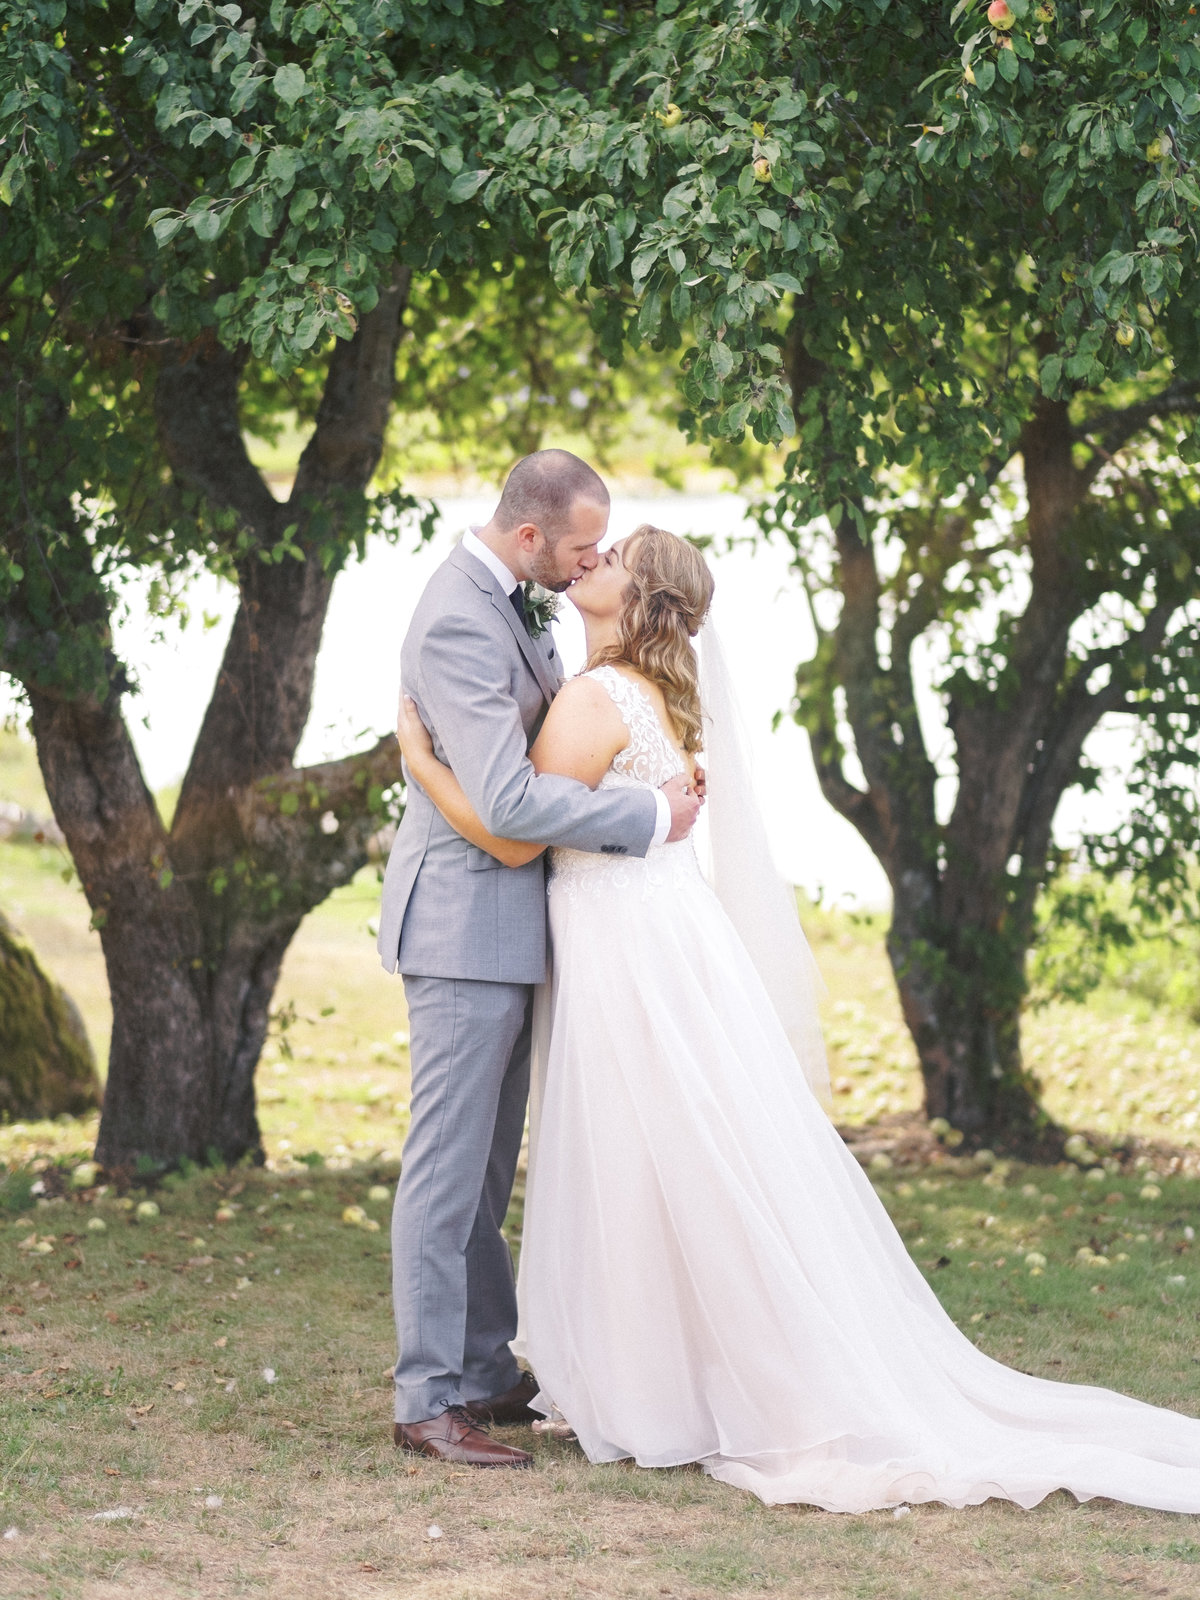 Jacqueline Anne Photography - A+A - Shining Waters Wedding-591